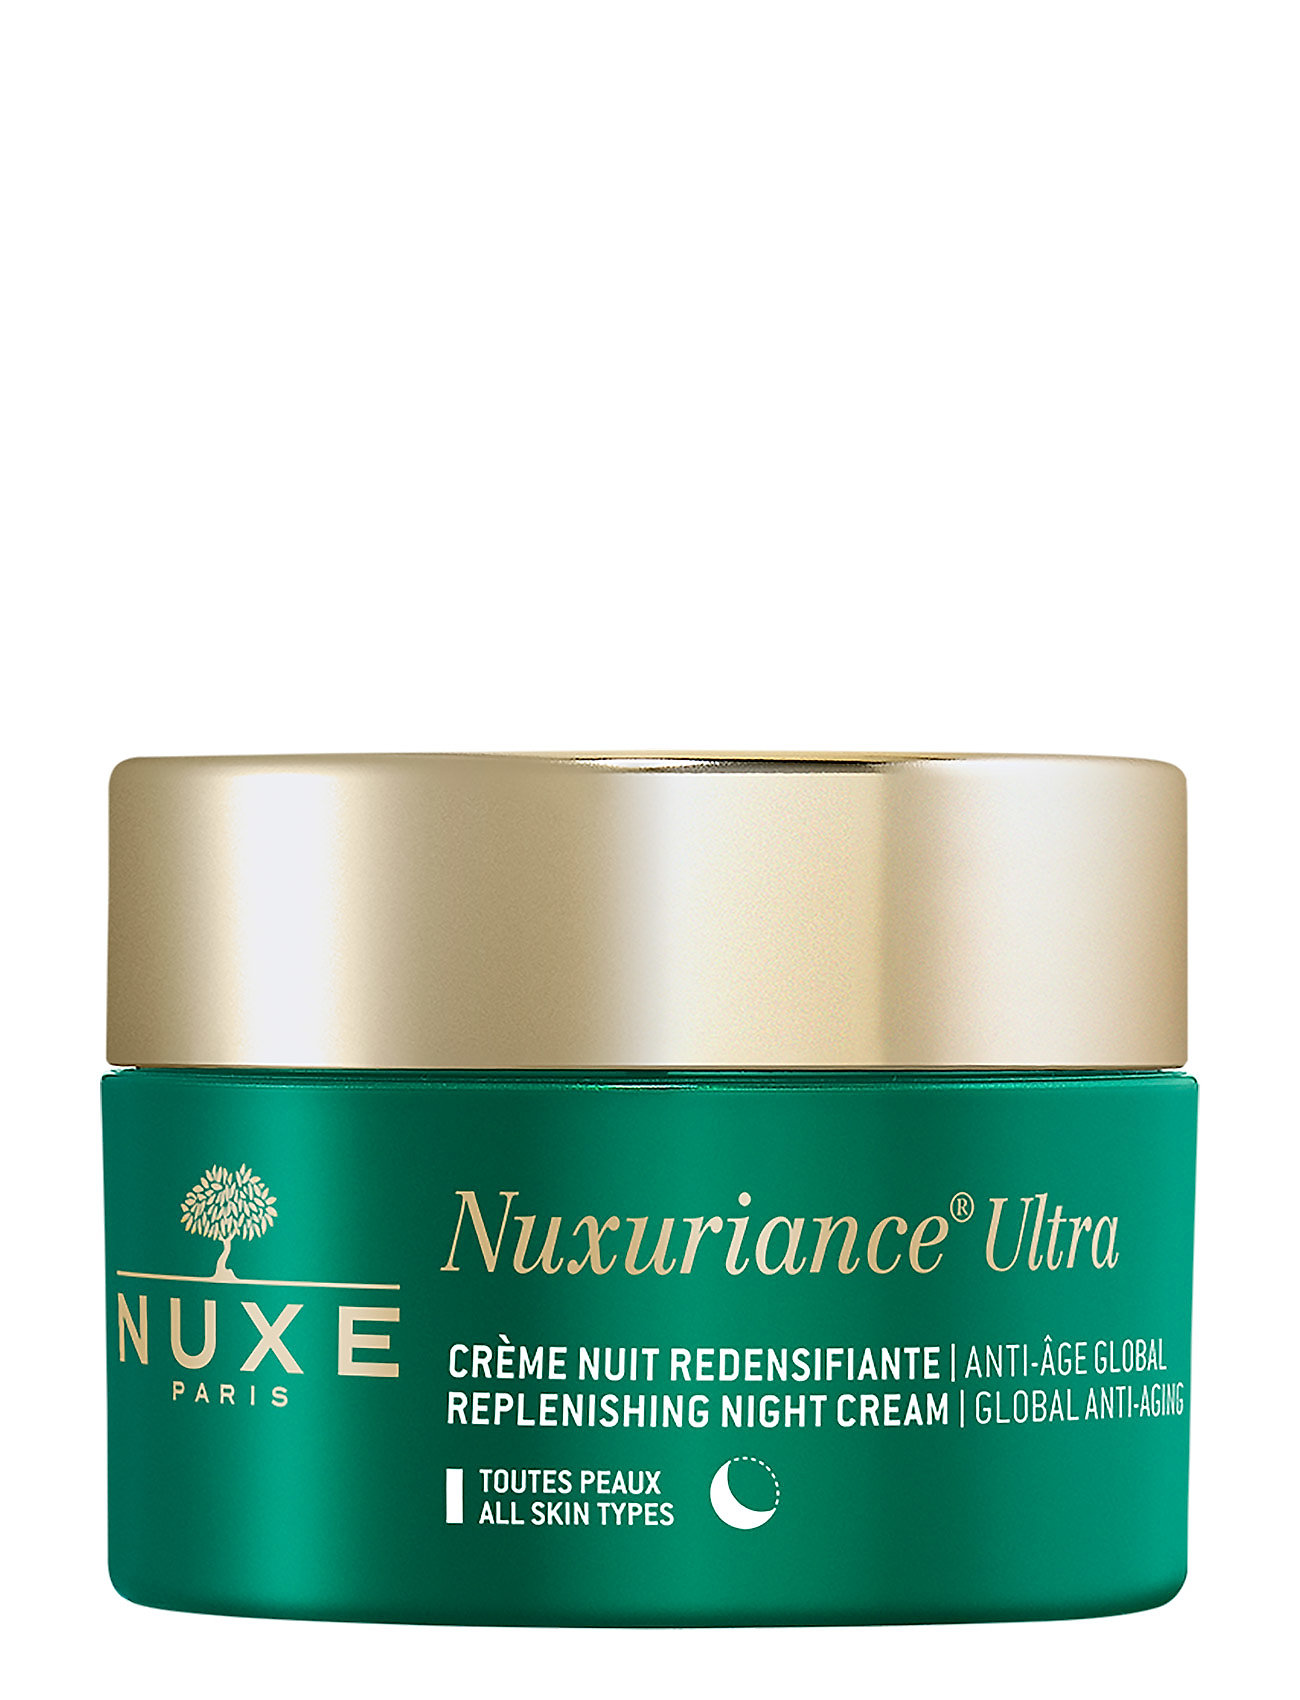 Image of Nuxuriance Ultra Night Cream Beauty WOMEN Skin Care Face Night Cream Nude NUXE (2604348565)